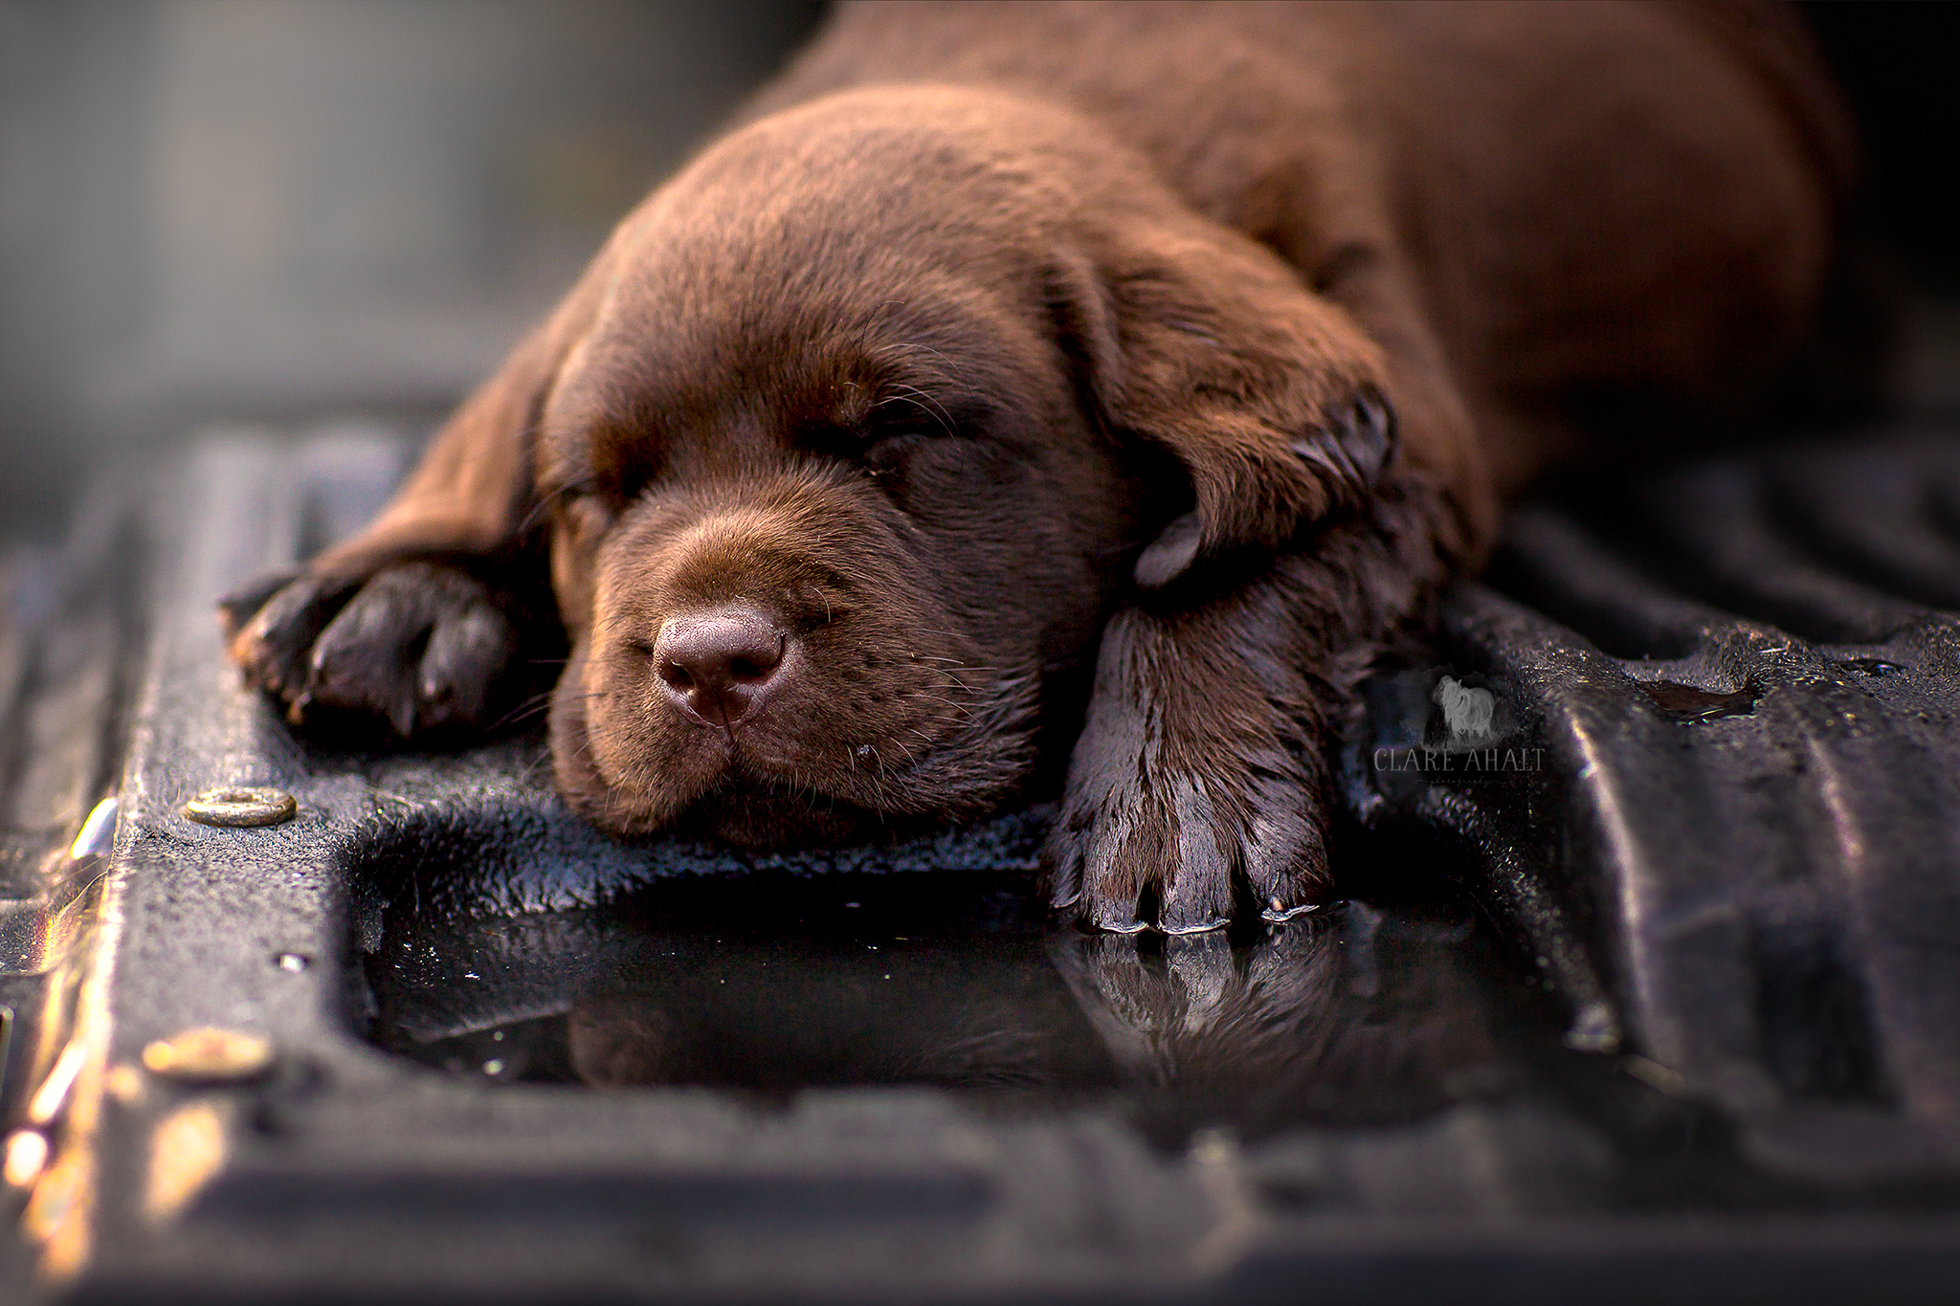 Pet portrait of a chocolate lab puppy, photography by Clare Ahalt Photography, a fine art portrait photographer located in Maryland.  Photographed during a workshop by Elena Shumilova Photography on location in Northern Virginia